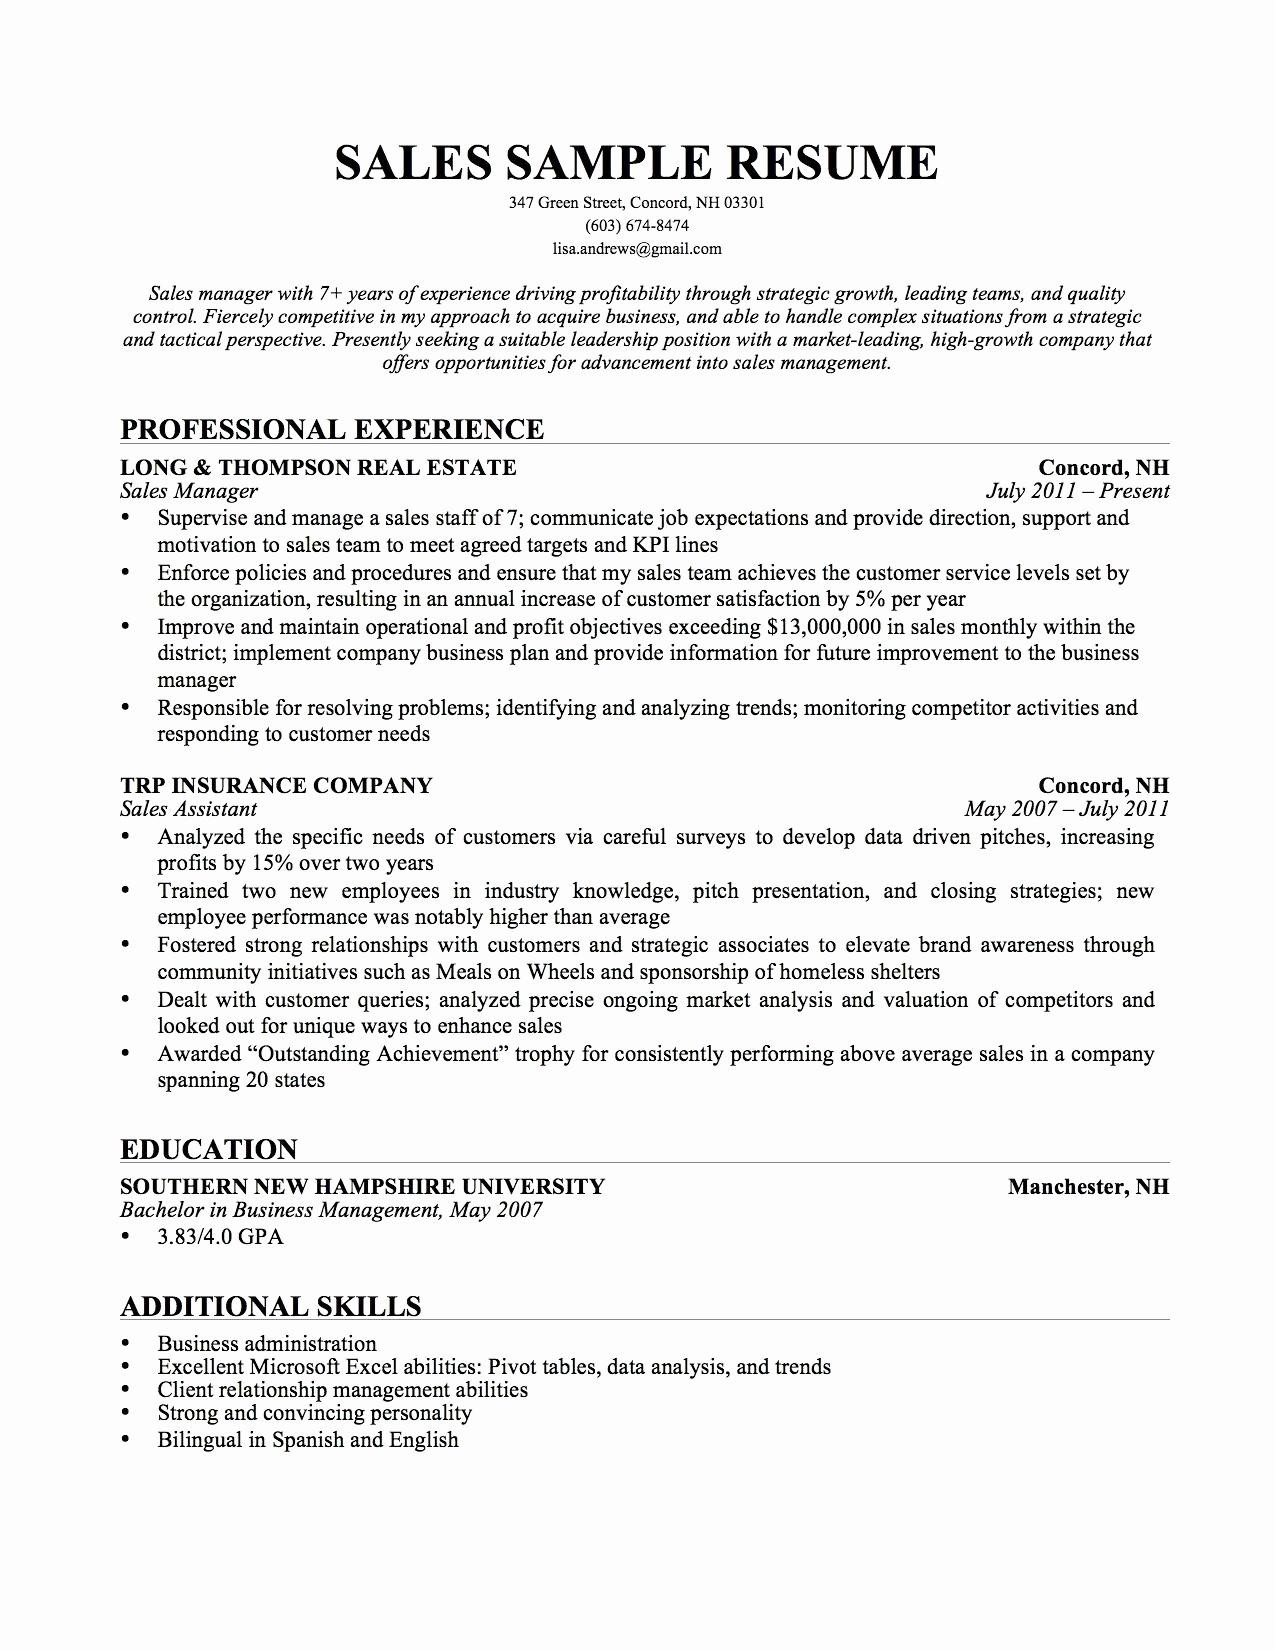 Healthcare Administration Resume - Medical Wallpapers Luxury Medical Administration Resume Sample